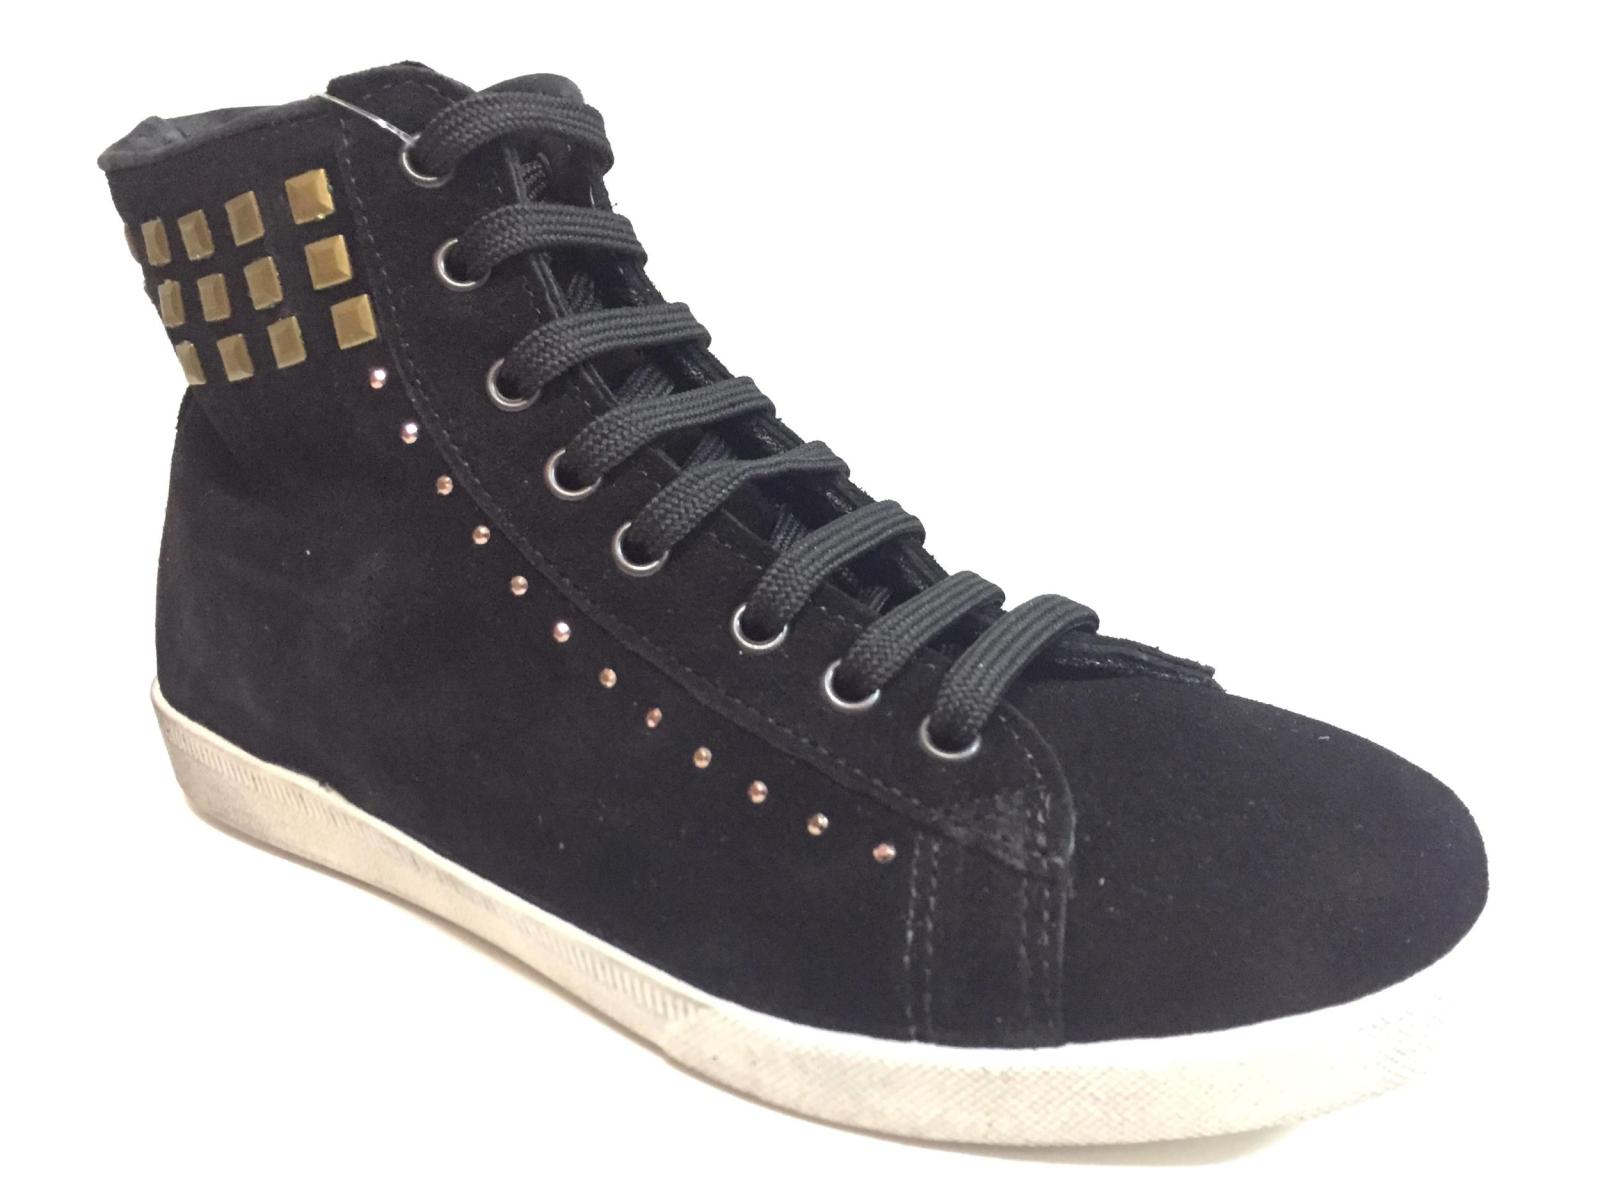 SCARPE SNEAKERS ALTE CASUAL DONNA KIOSS 133 PELLE NERO ORIGINALE AI NEW